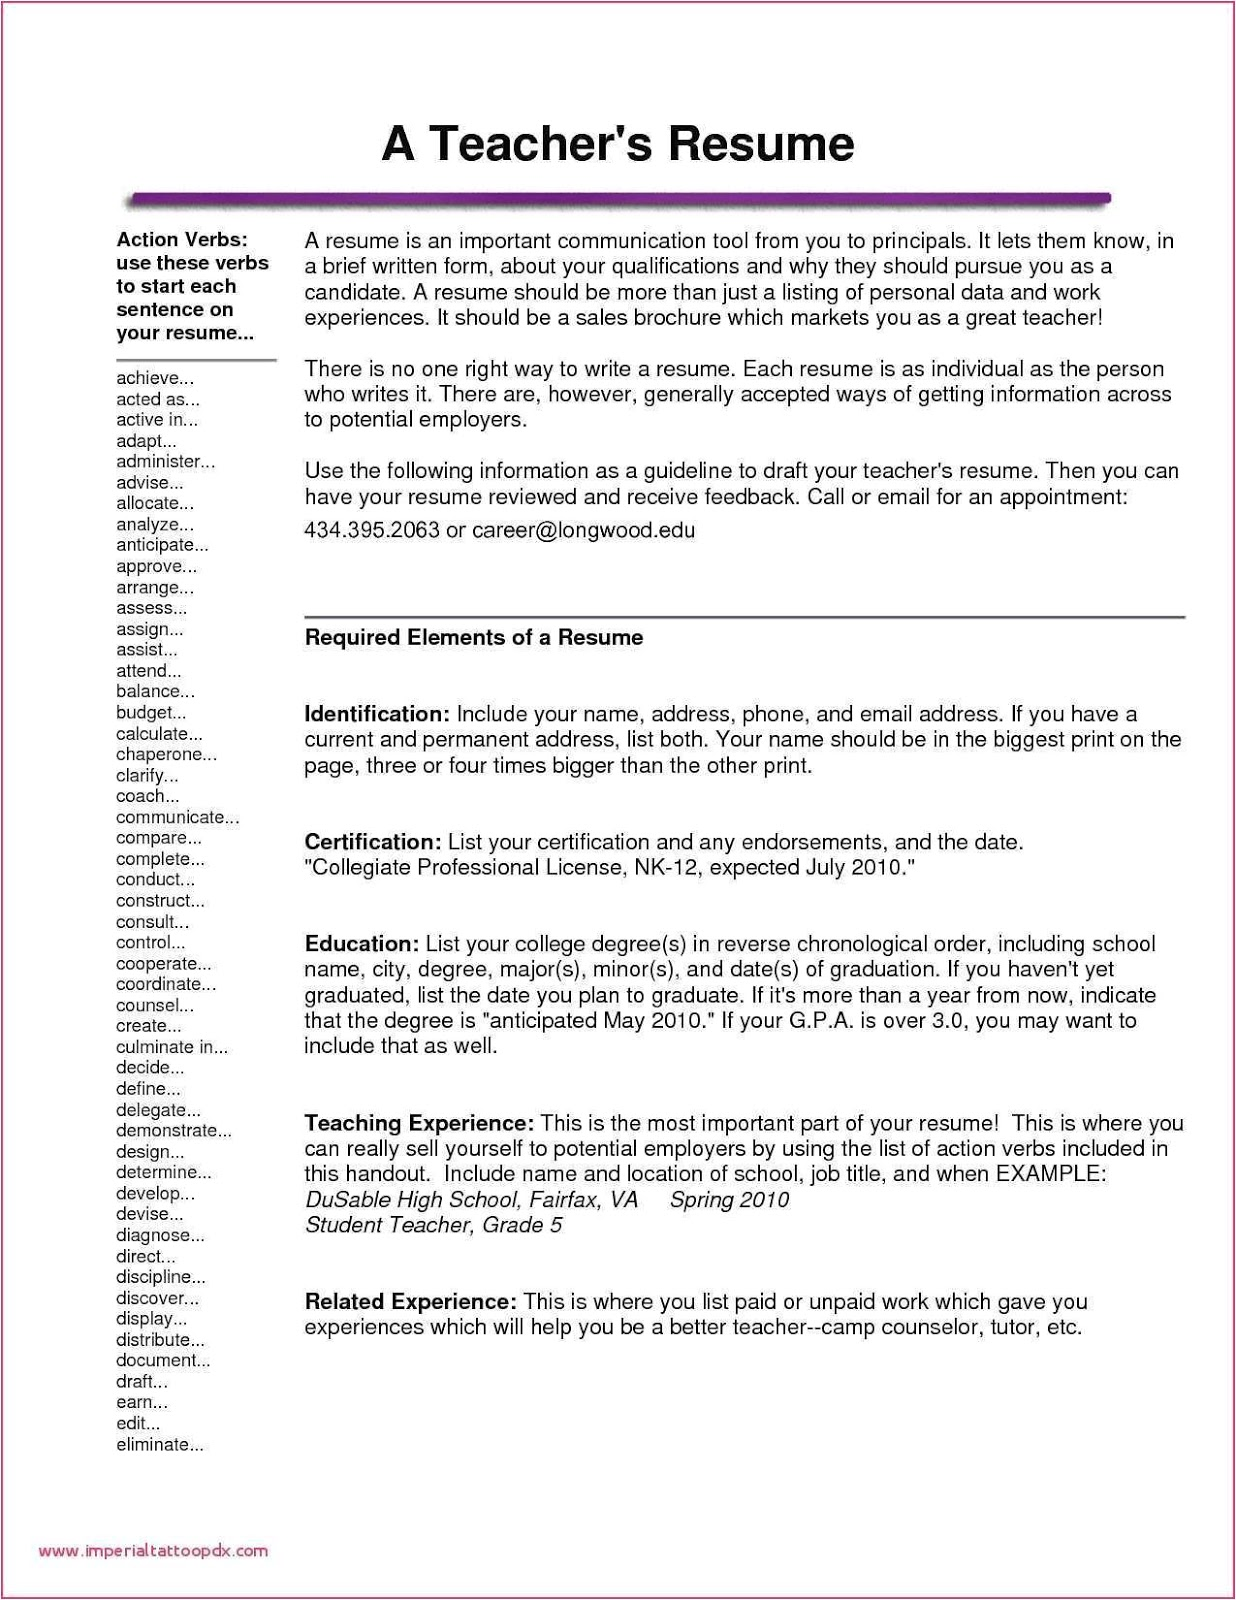 a great resume example creating a great resume examples how to make a great resume examples how to write a great resume examples a great example of a resume example of a great resume cover letter example of a great resume for entry level a good resume headline example a good resume example for a highschool student a good resume objective example the perfect resume objective sample example of a great resume 2018 example of a great resume summary example of a great paralegal resume great resume example great resume examples great resume examples 2019 great resume examples reddit great resume examples for marketing great resume examples for sales great resume examples for college students great resume examples for customer service great resume examples for teachers great resume examples 2018